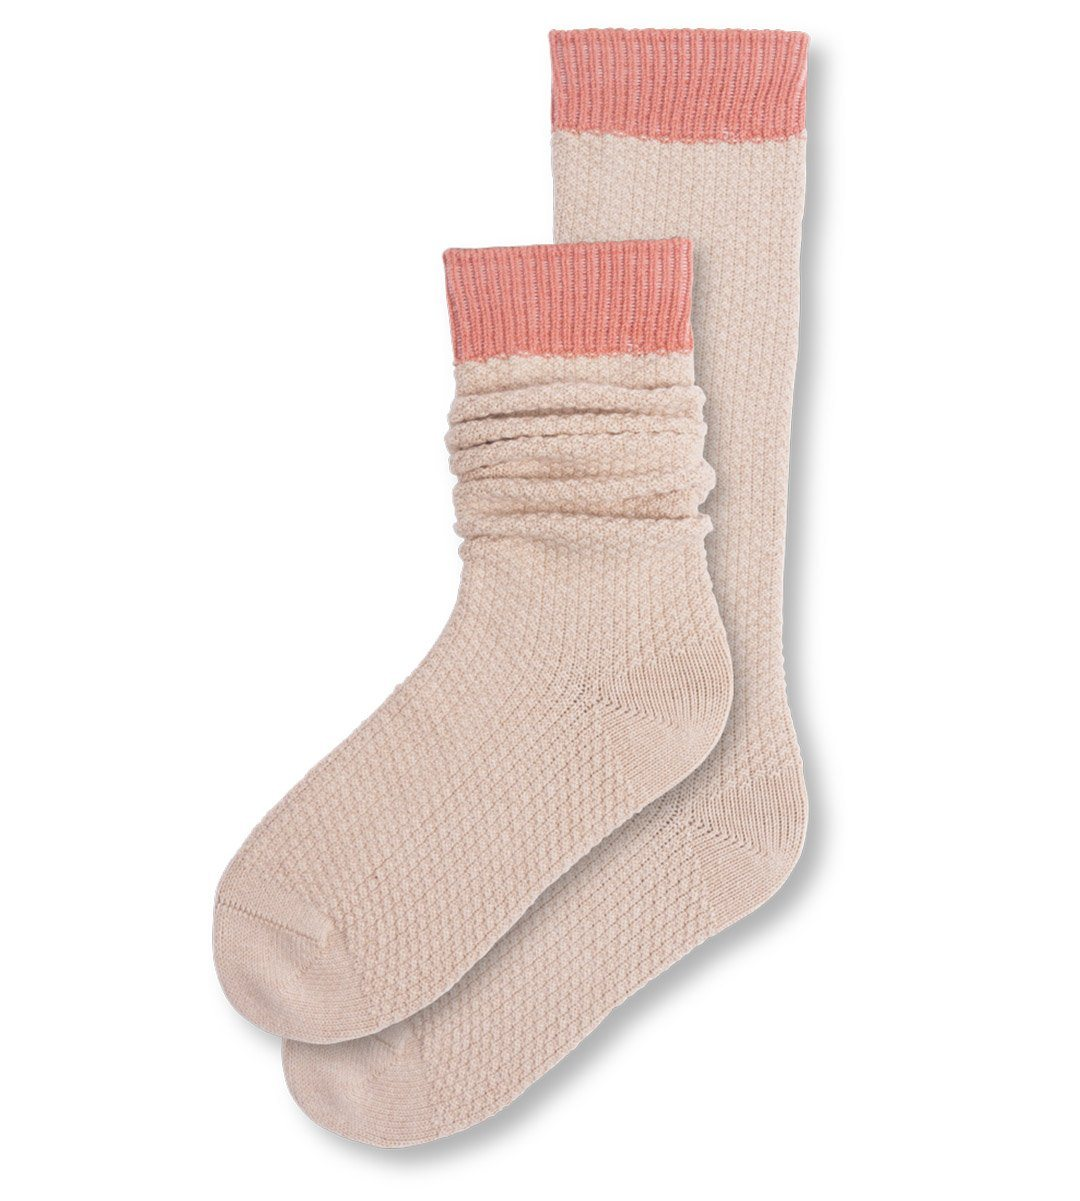 Knit Courage Boot Women's Merino Boot Socks